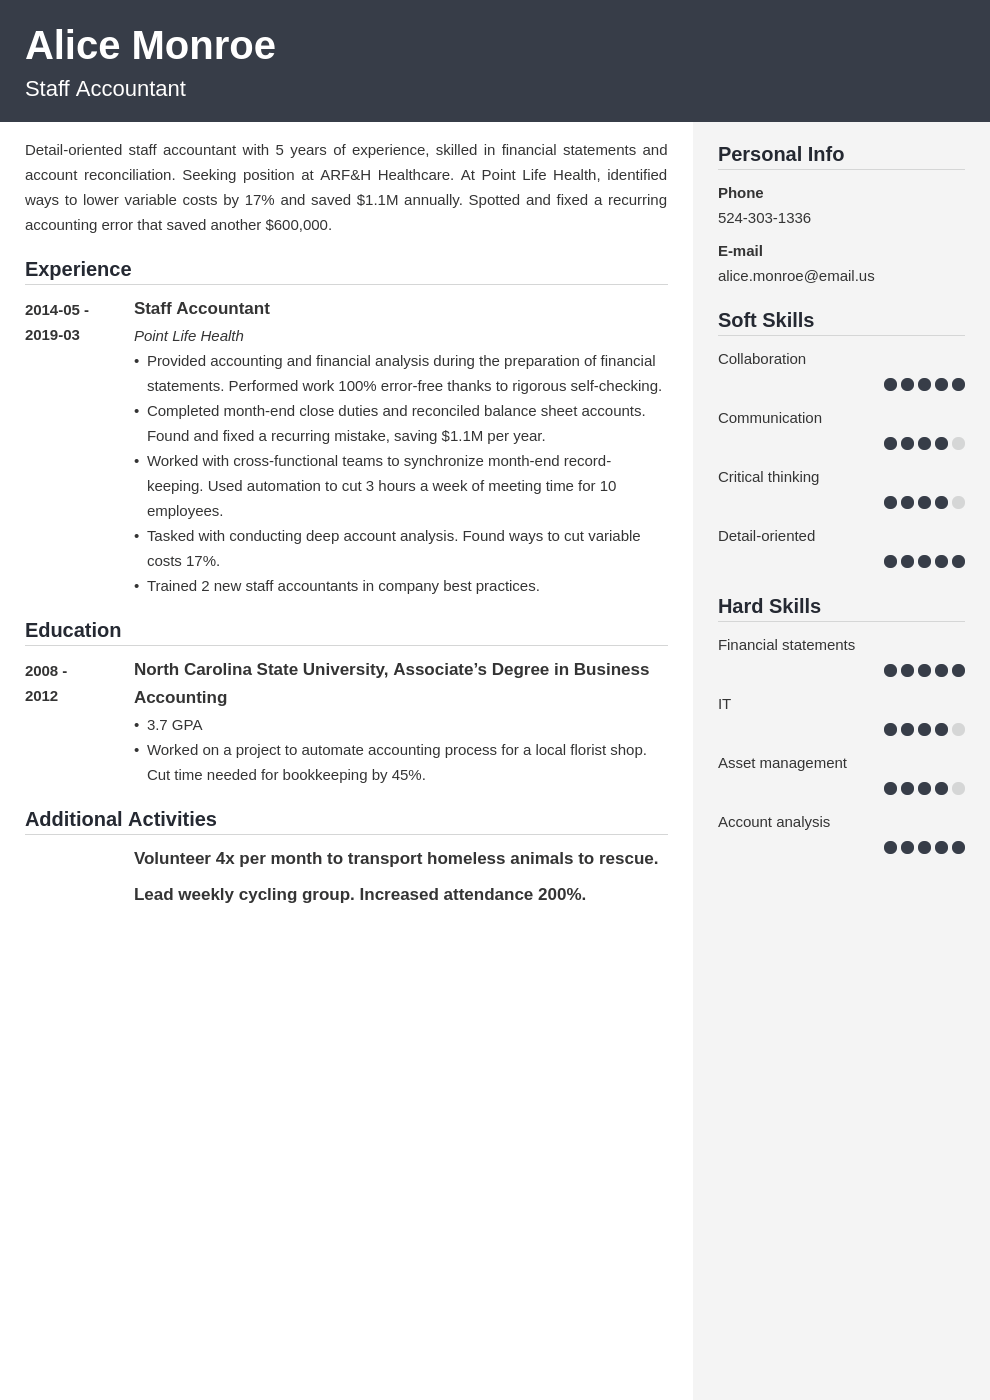 staff accountant resume example template cubic